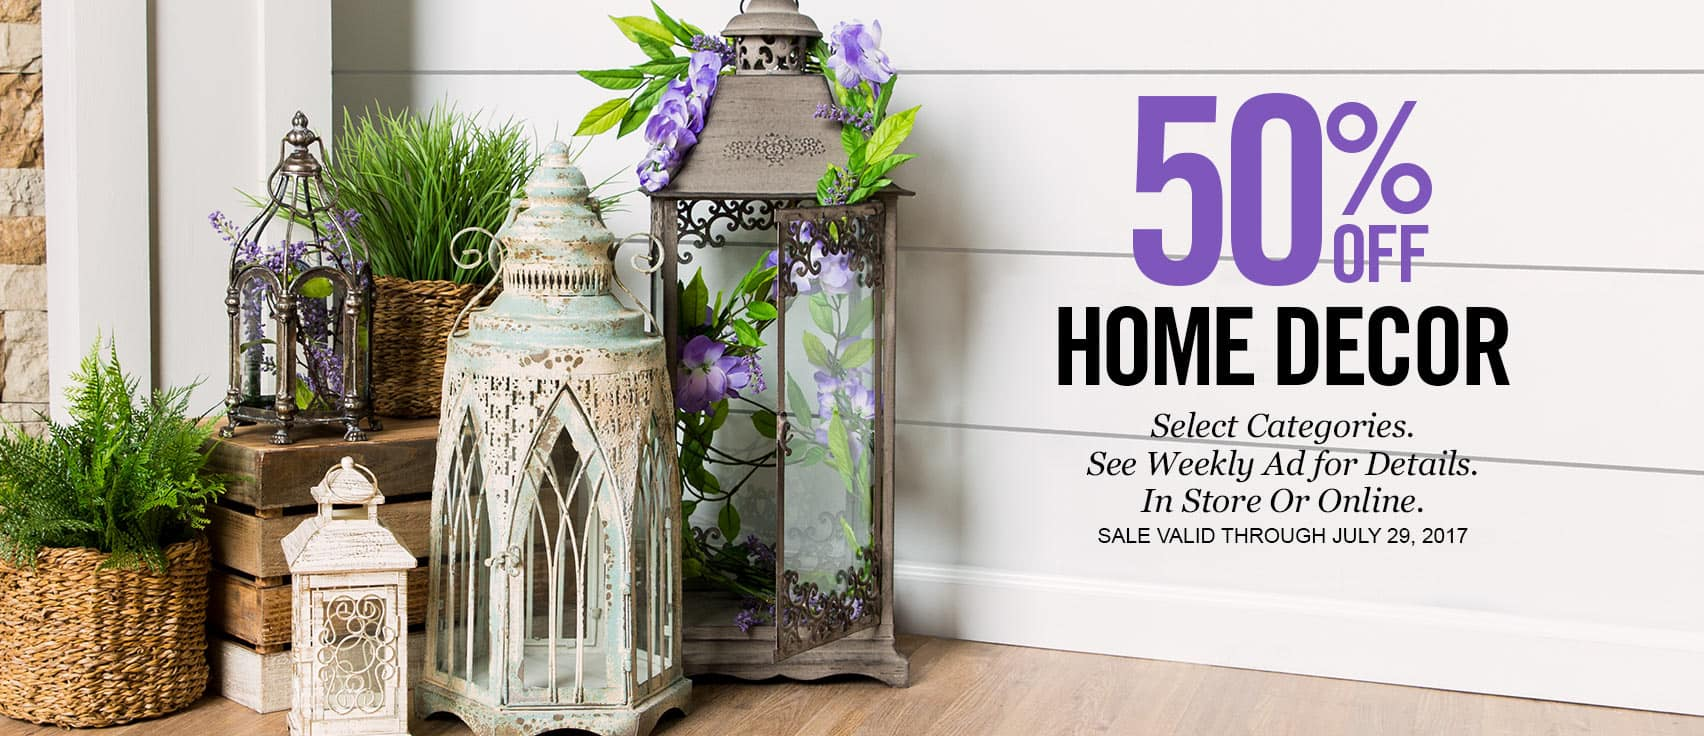 Hobby lobby coupons july 2017 don 39 t miss out on these for Home decorators coupon 50 off 200